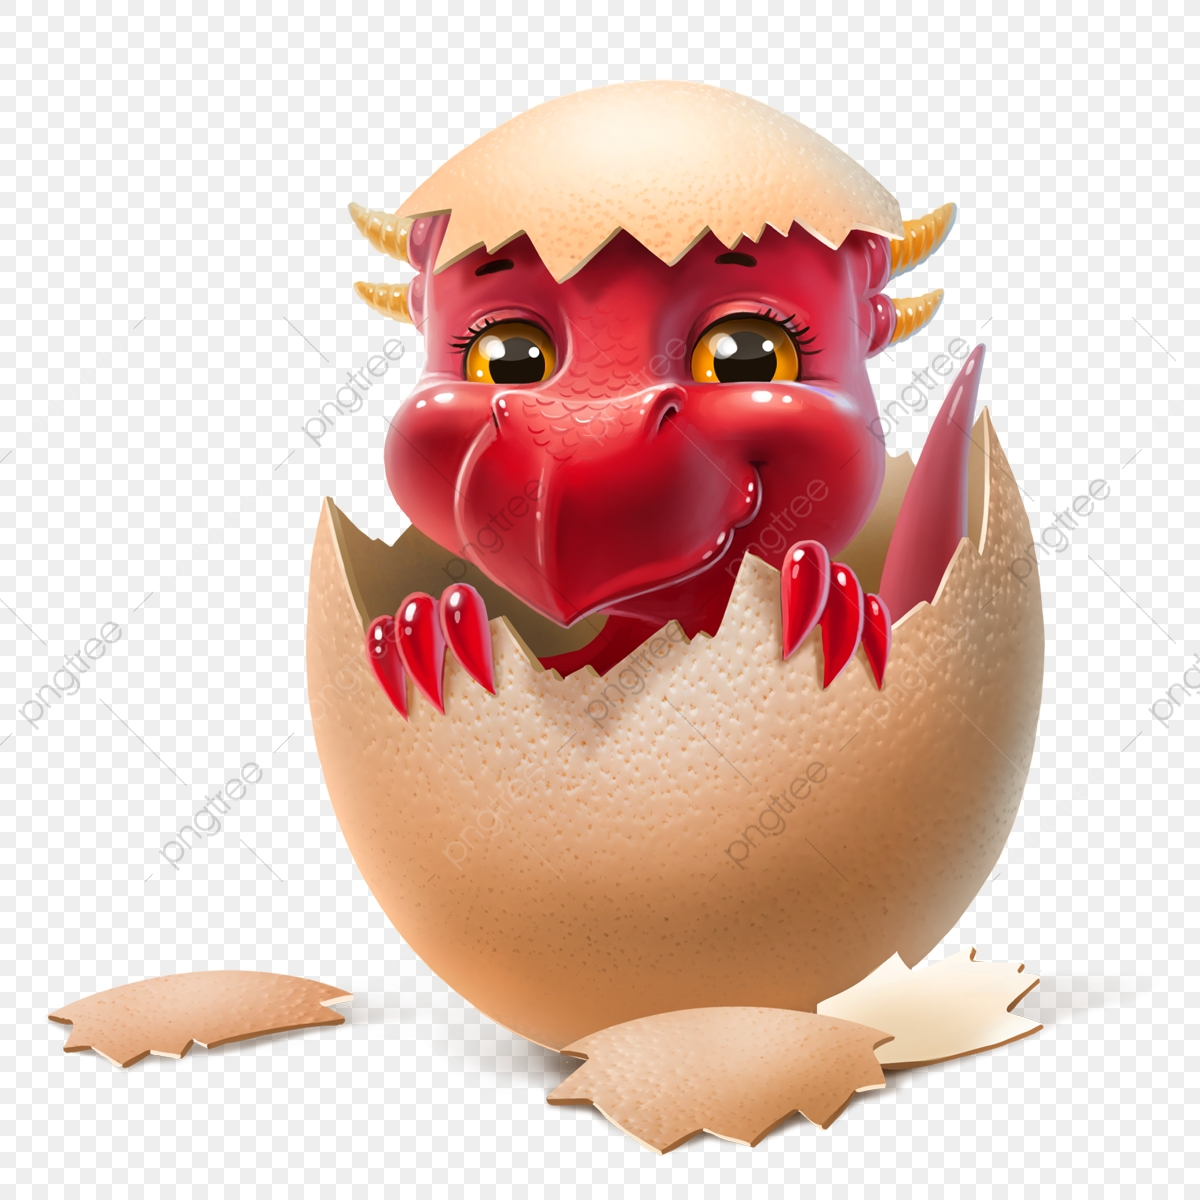 Newborn Dragon In Egg, Silly, Ball, Cartoon PNG Transparent